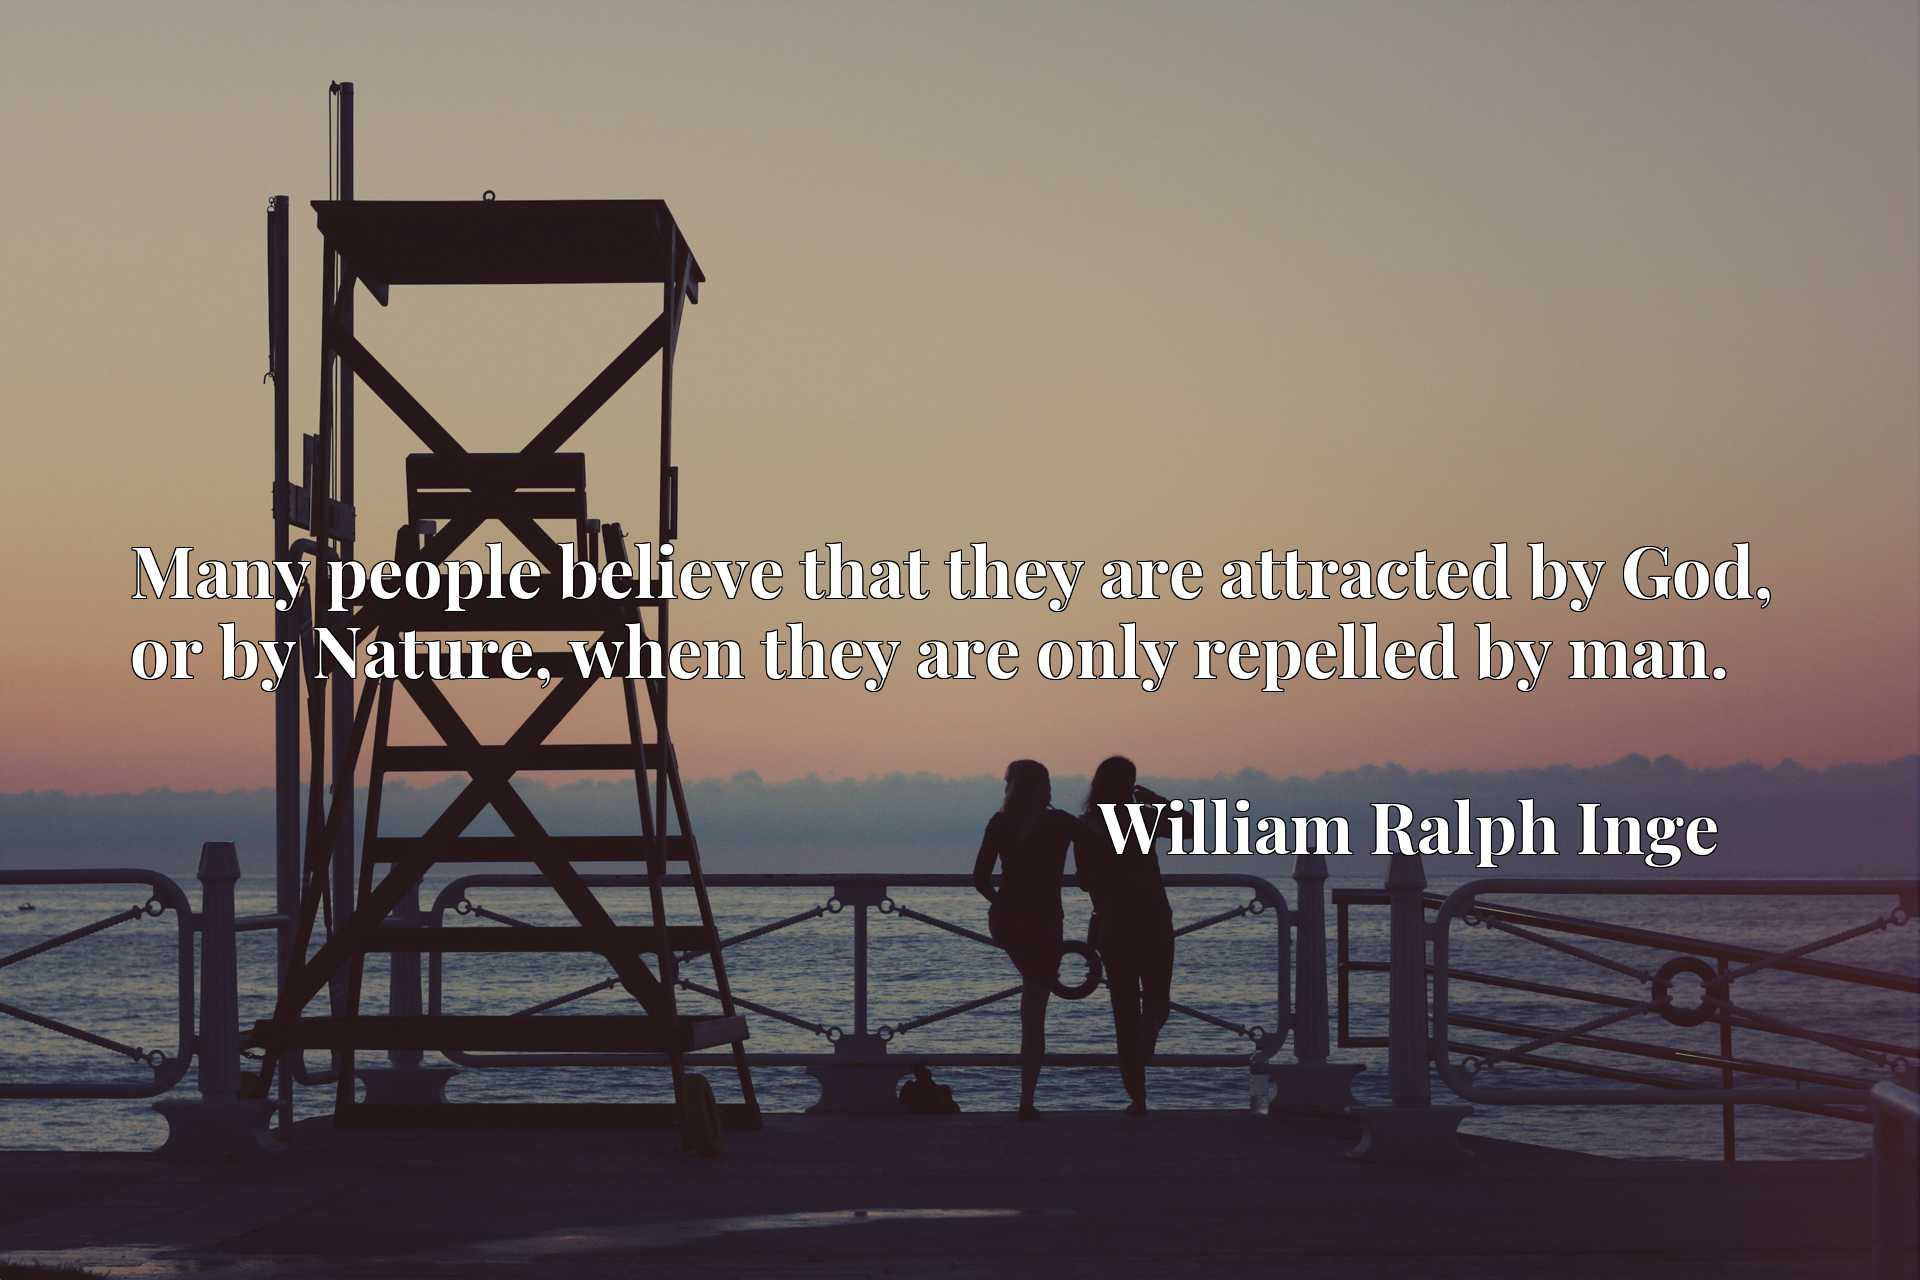 Quote Picture :Many people believe that they are attracted by God, or by Nature, when they are only repelled by man.